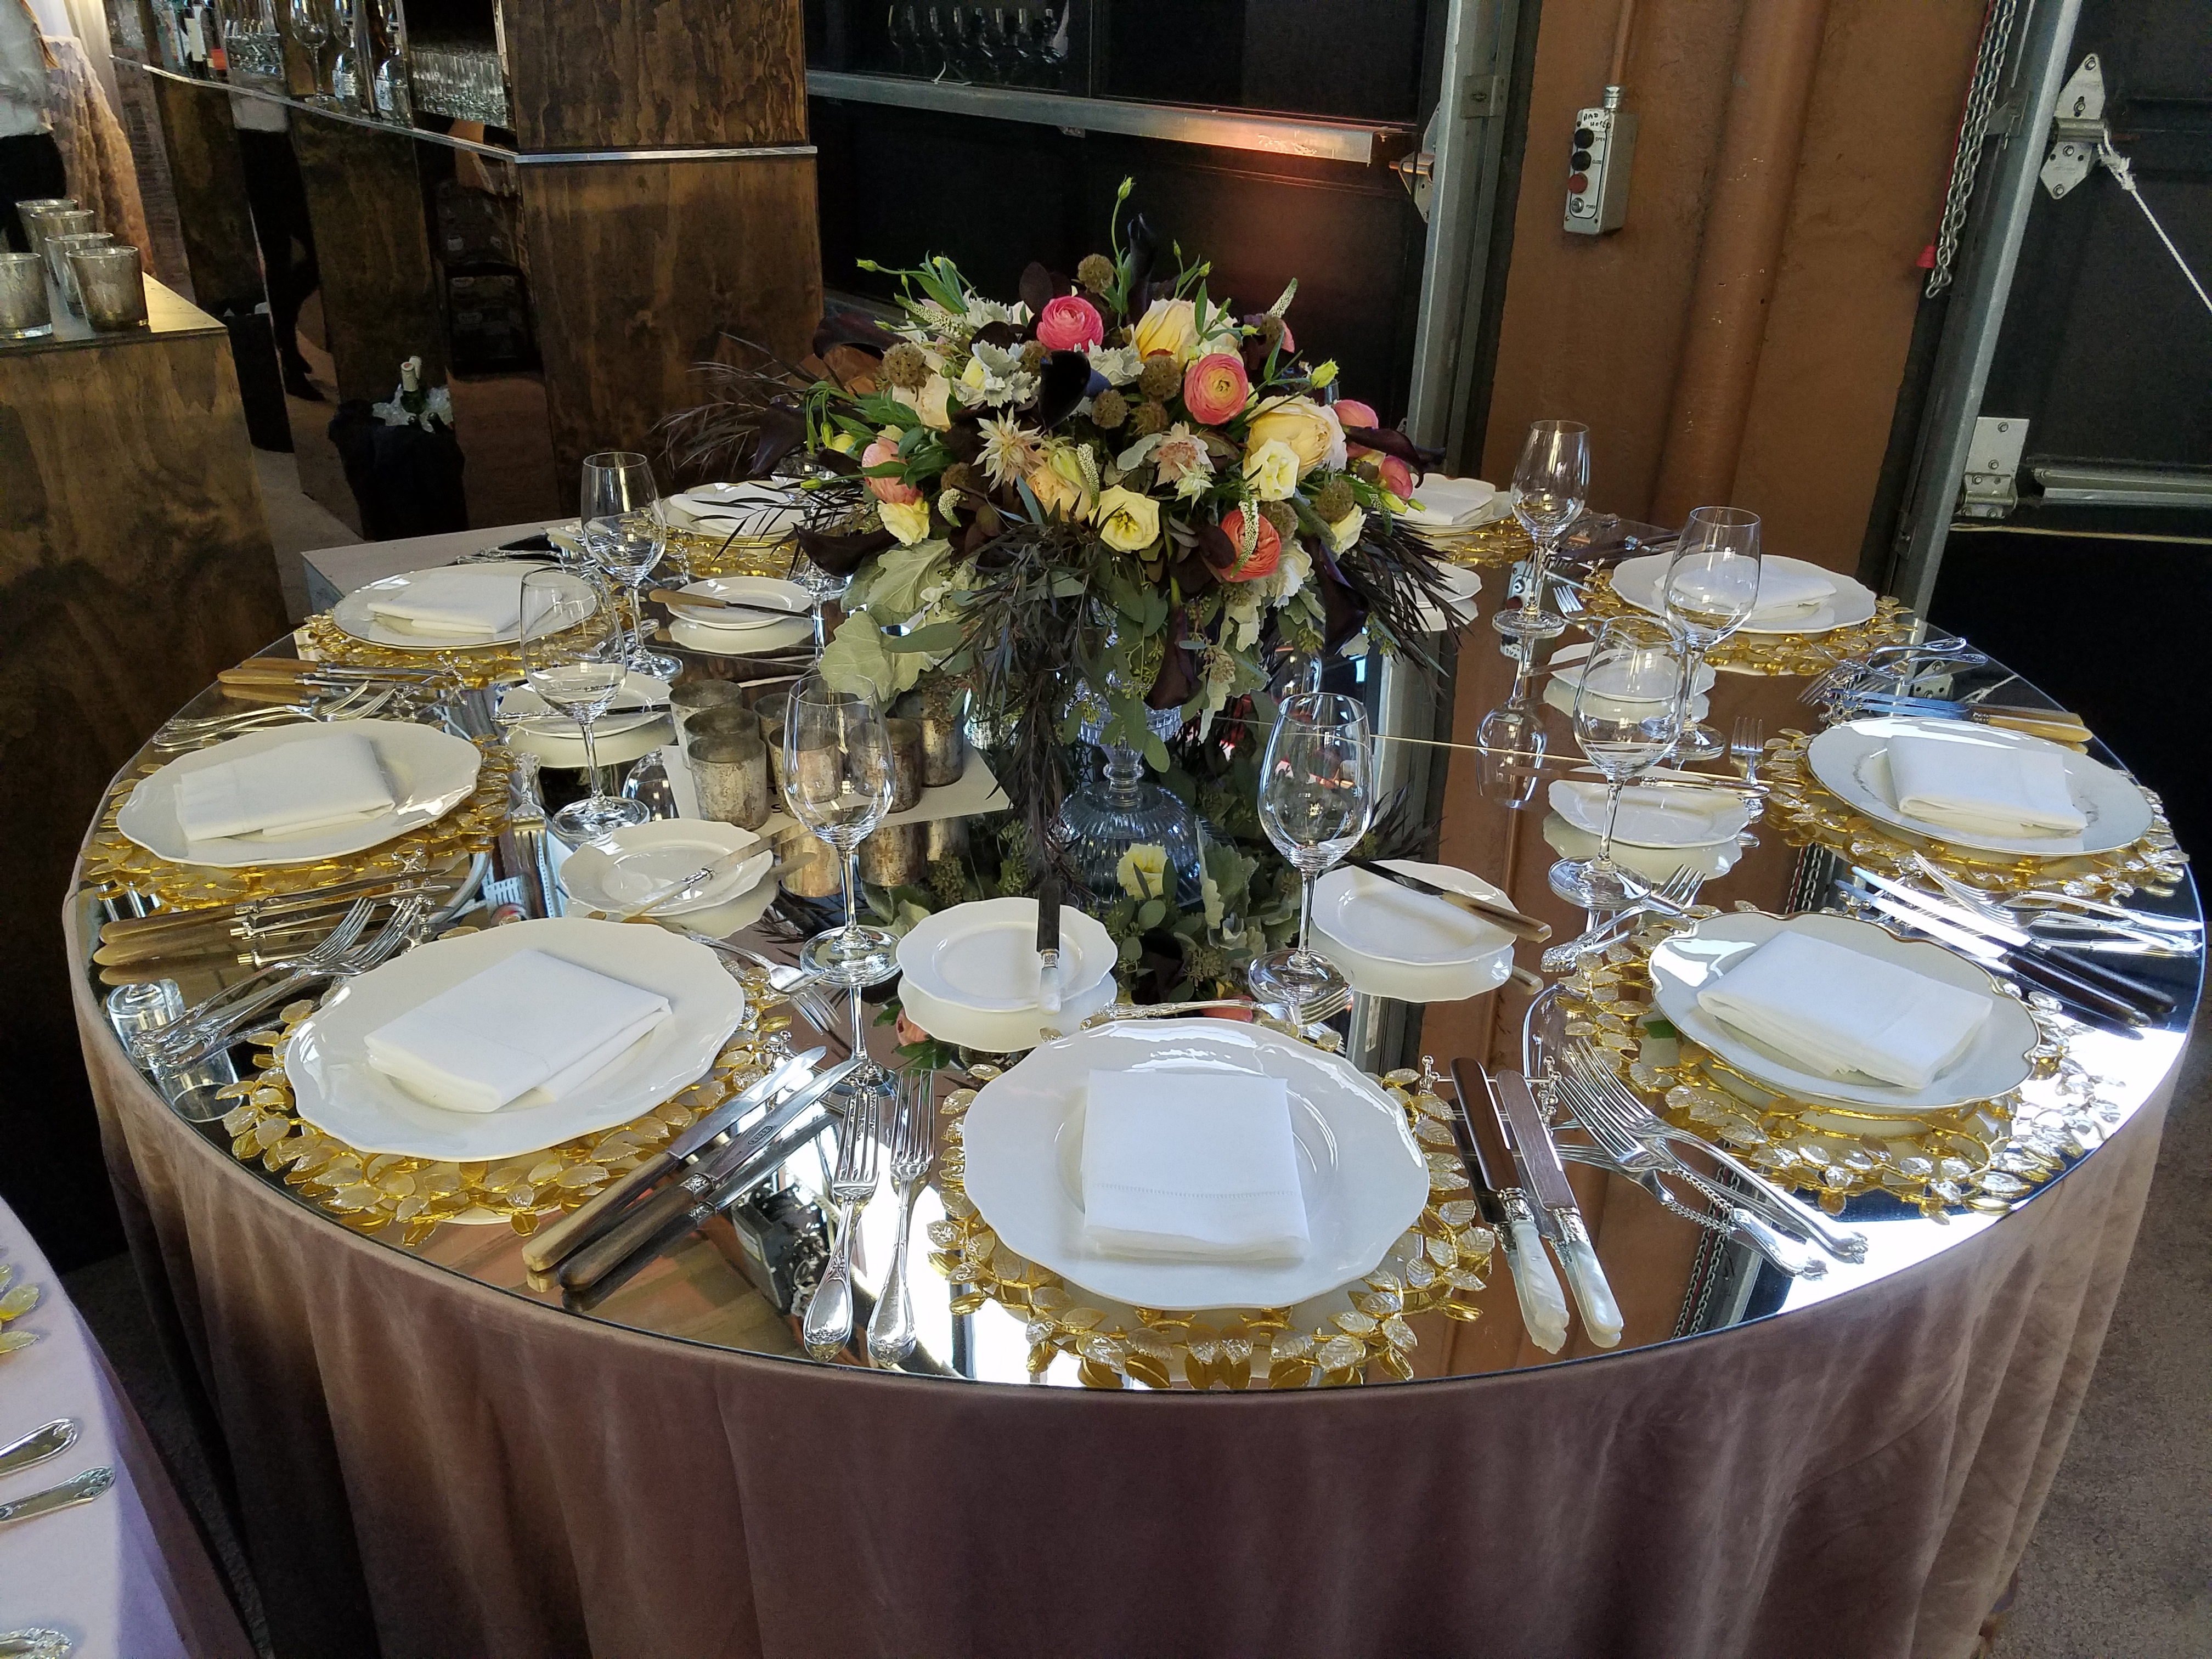 Marvelous 72 Inch Round Mirrored Acrylic Table Top